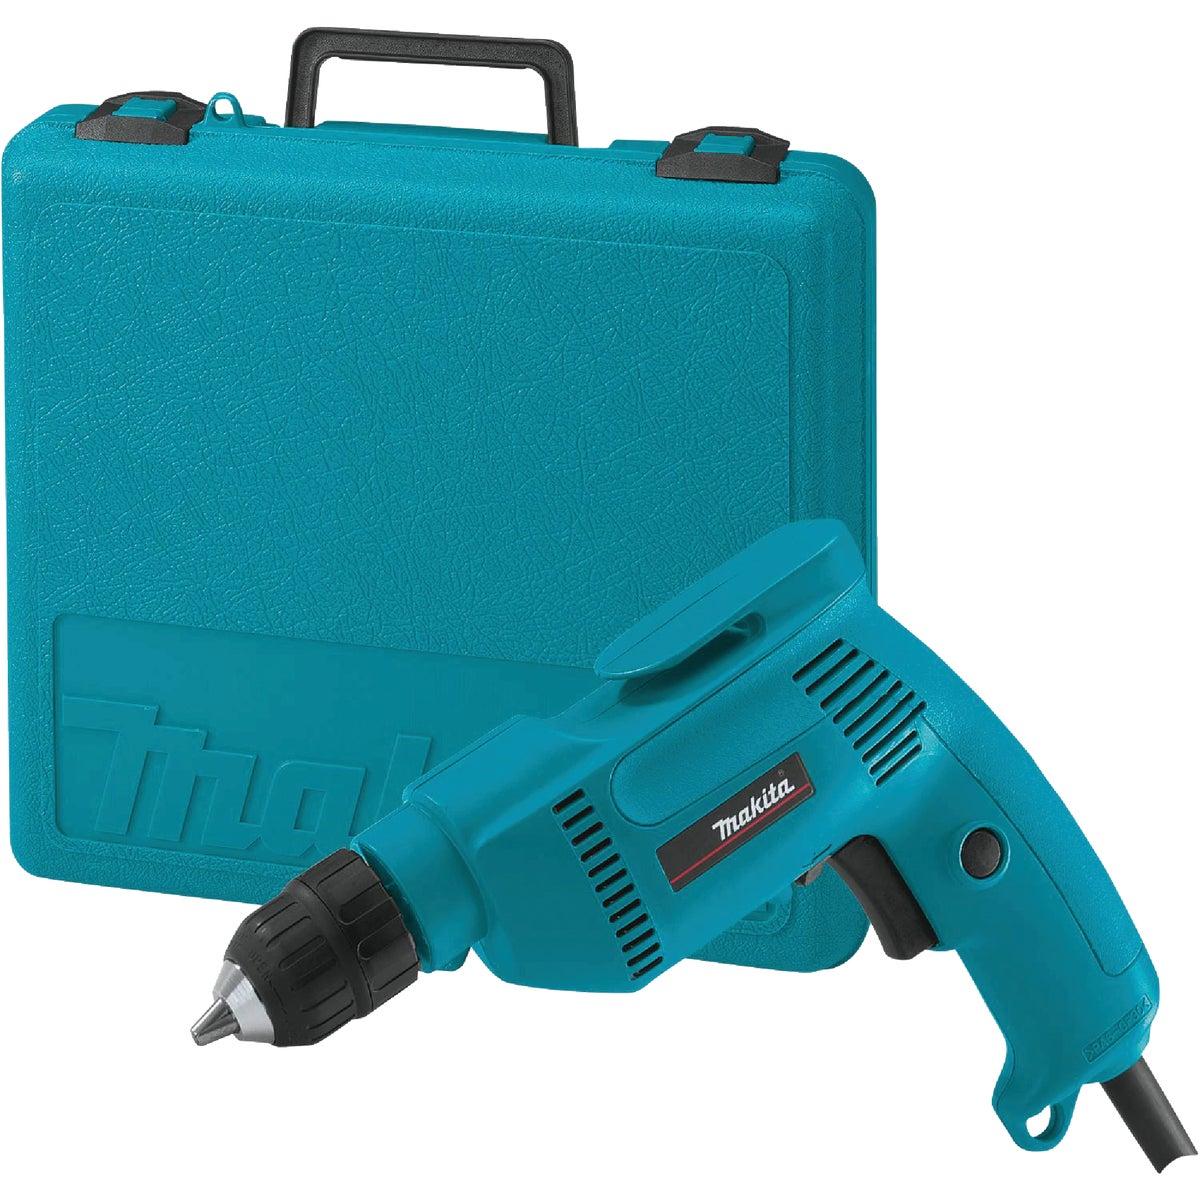 "3/8"" VSR DRILL - 6408K by Makita Usa Inc"